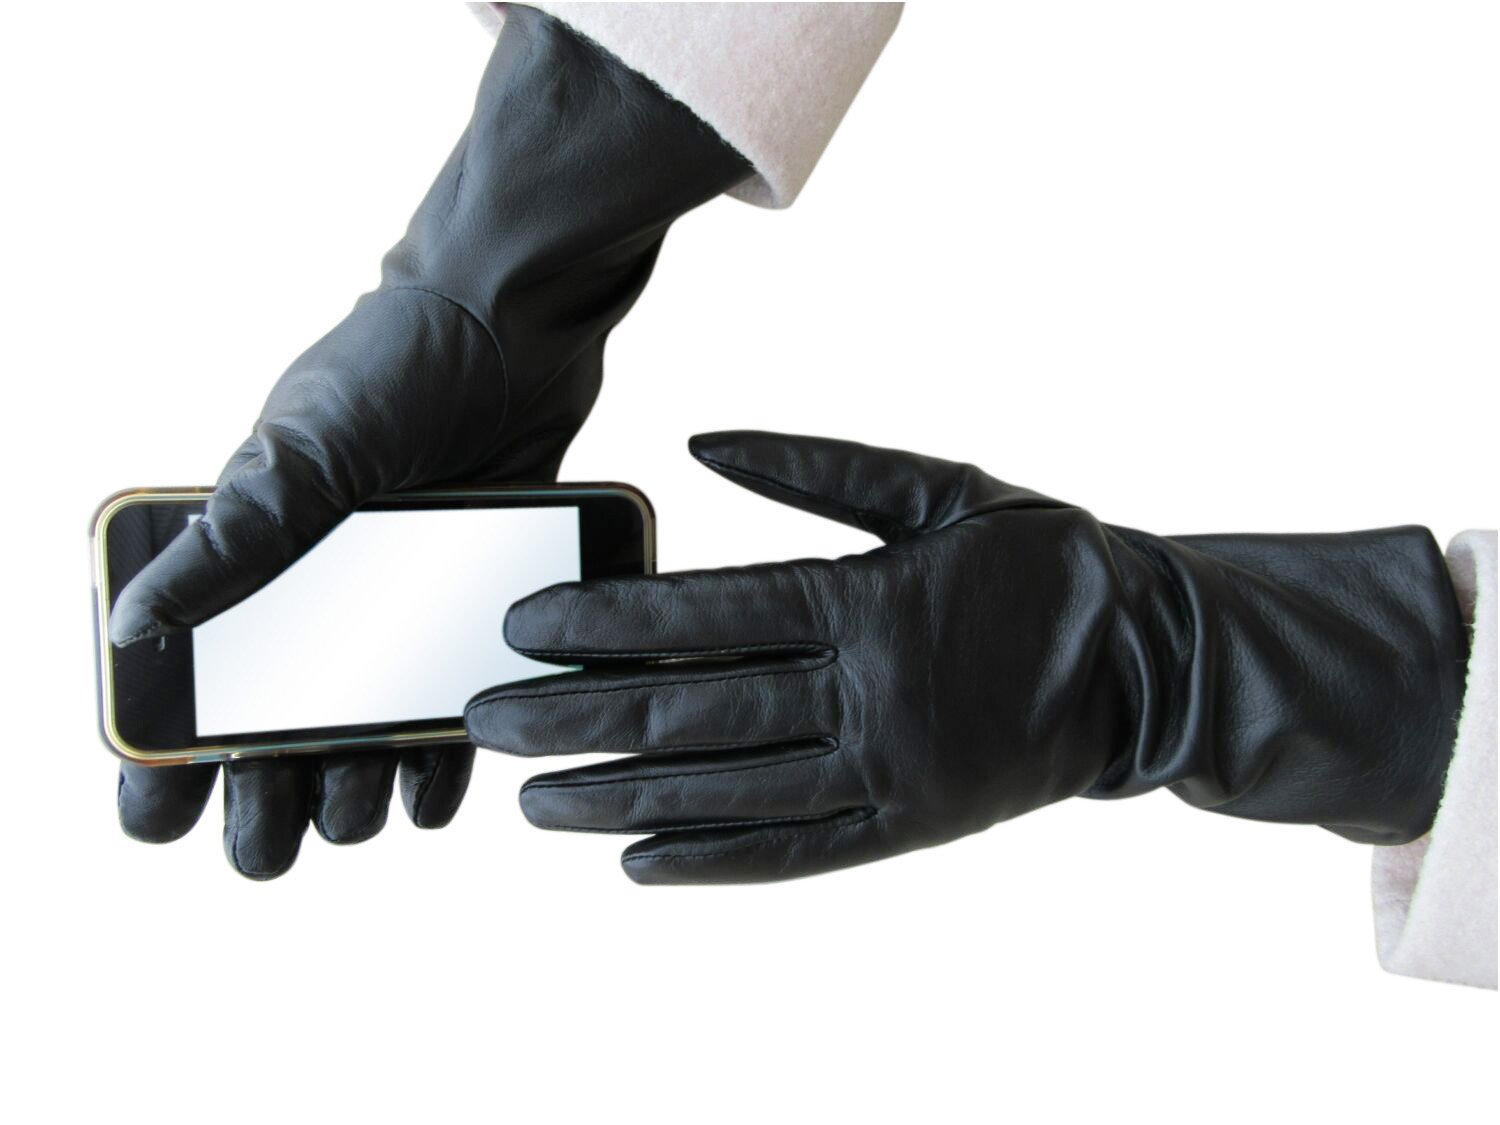 Fownes Women's Cashmere Lined Black Conductive Lambskin Leather Gloves 8/XL by Fownes Brothers (Image #4)